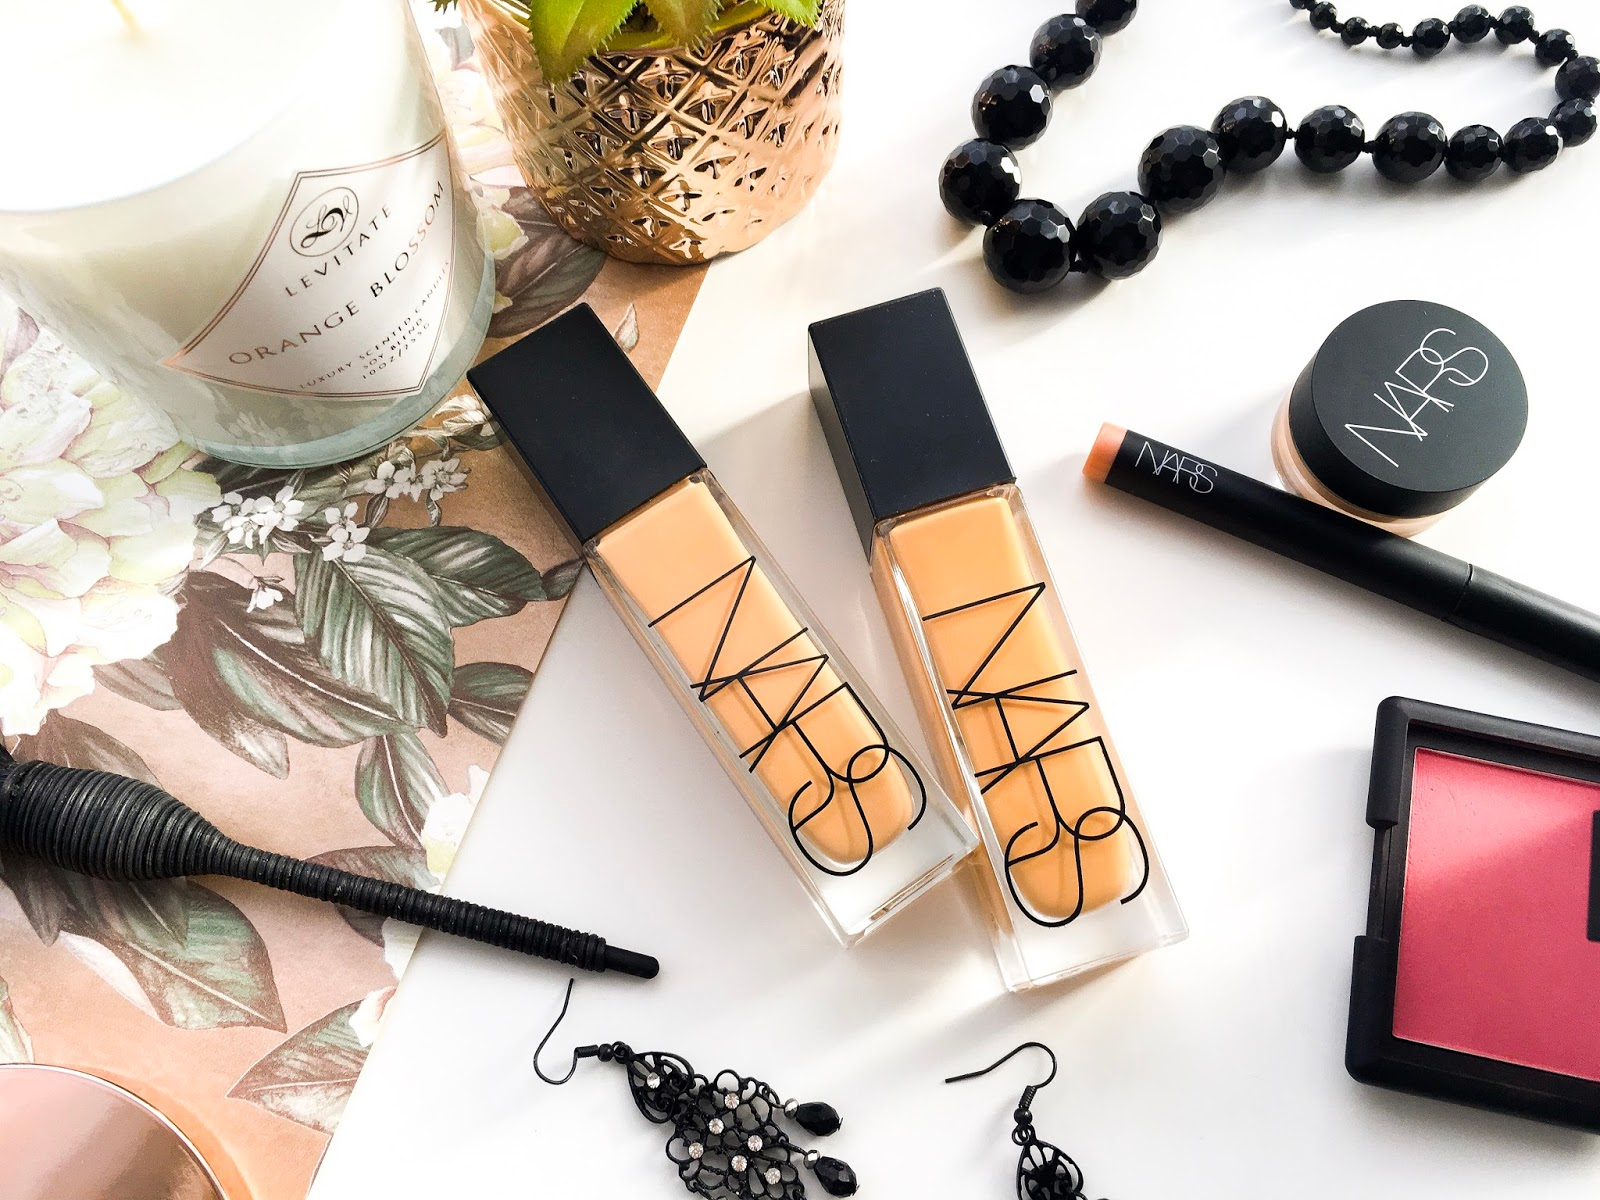 new nars natural radiant longwear foundation review, nars natural radiant foundation vs nars sheer glow, nars natural radiant longwear foundation review and swatches